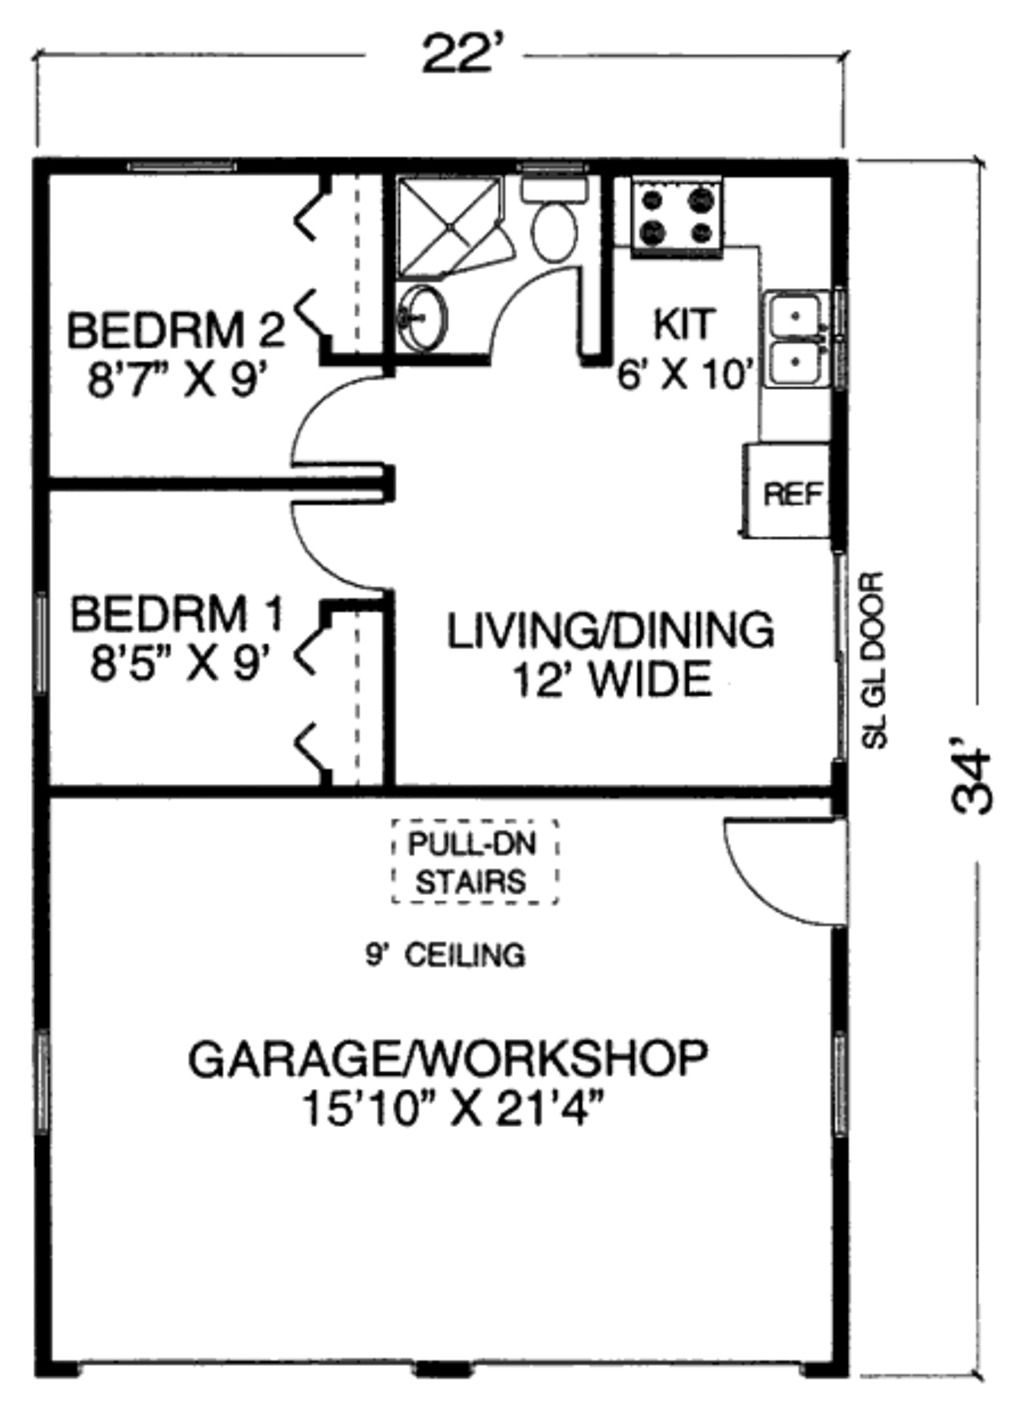 Traditional Style House Plan 1 Beds 1 Baths 421 Sq Ft Plan 57 397 Garage Apartment Plans Garage Plan Garage Plans